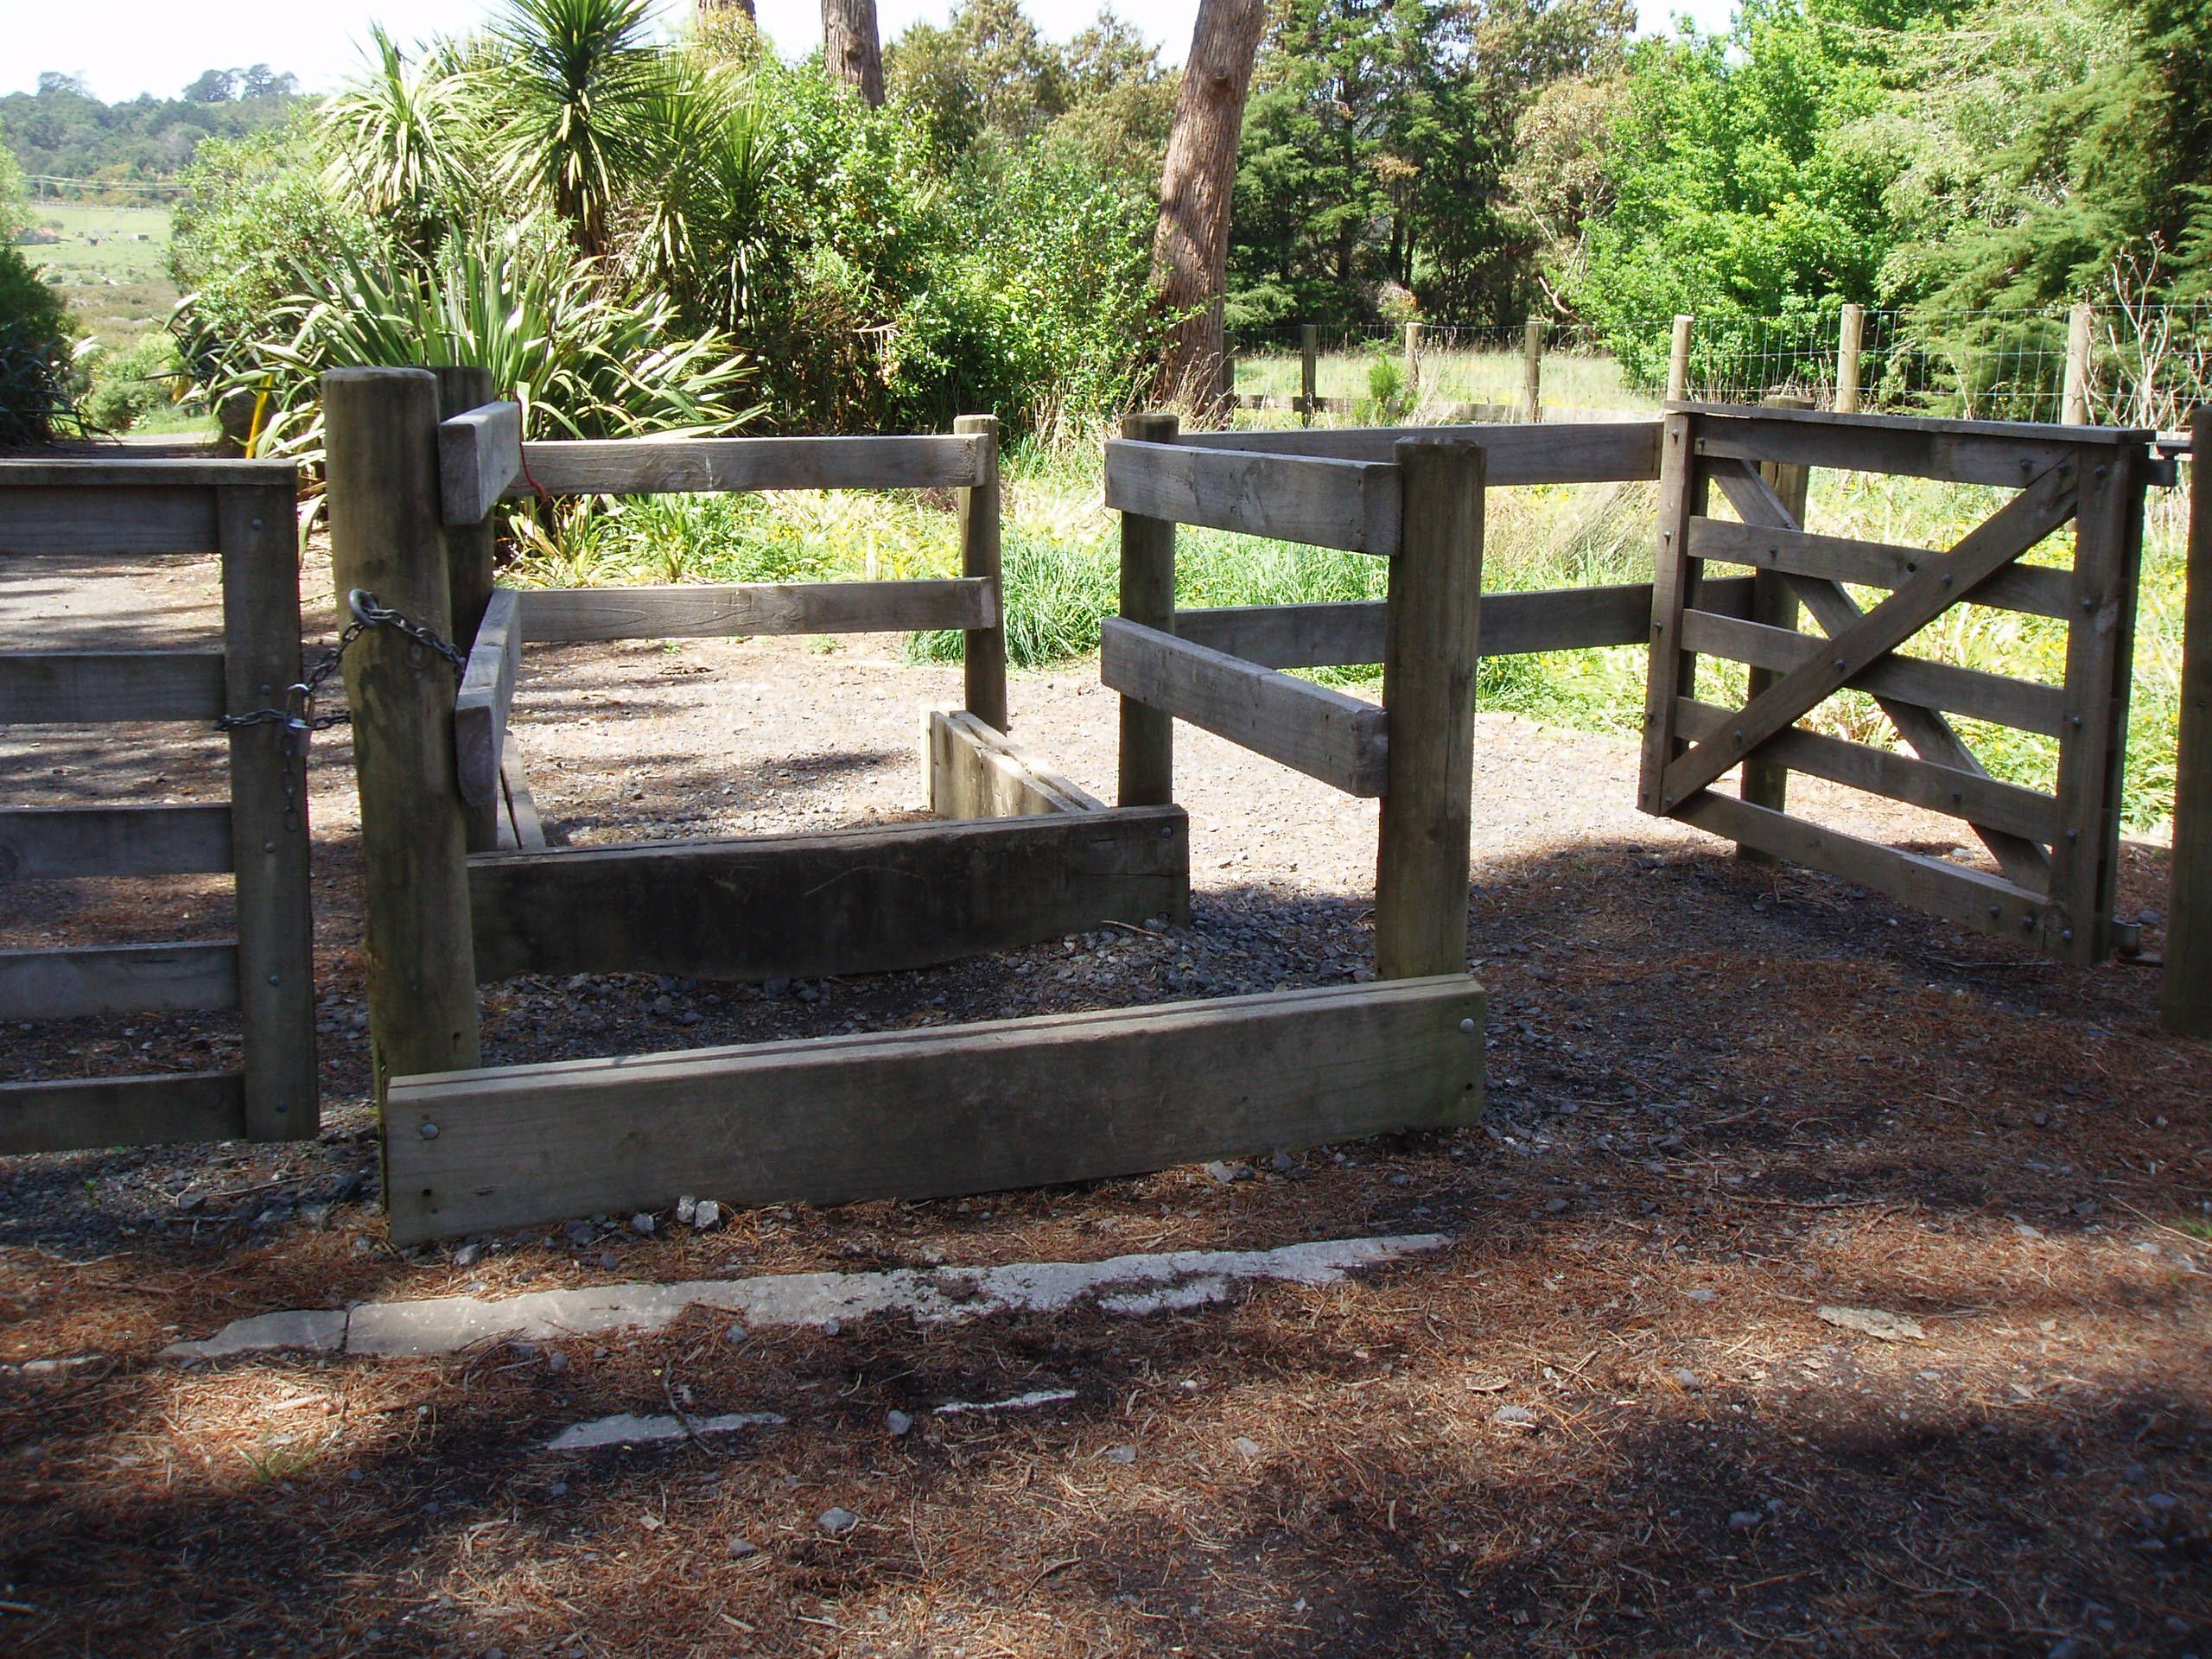 horse access stile including walking gates intended to keep